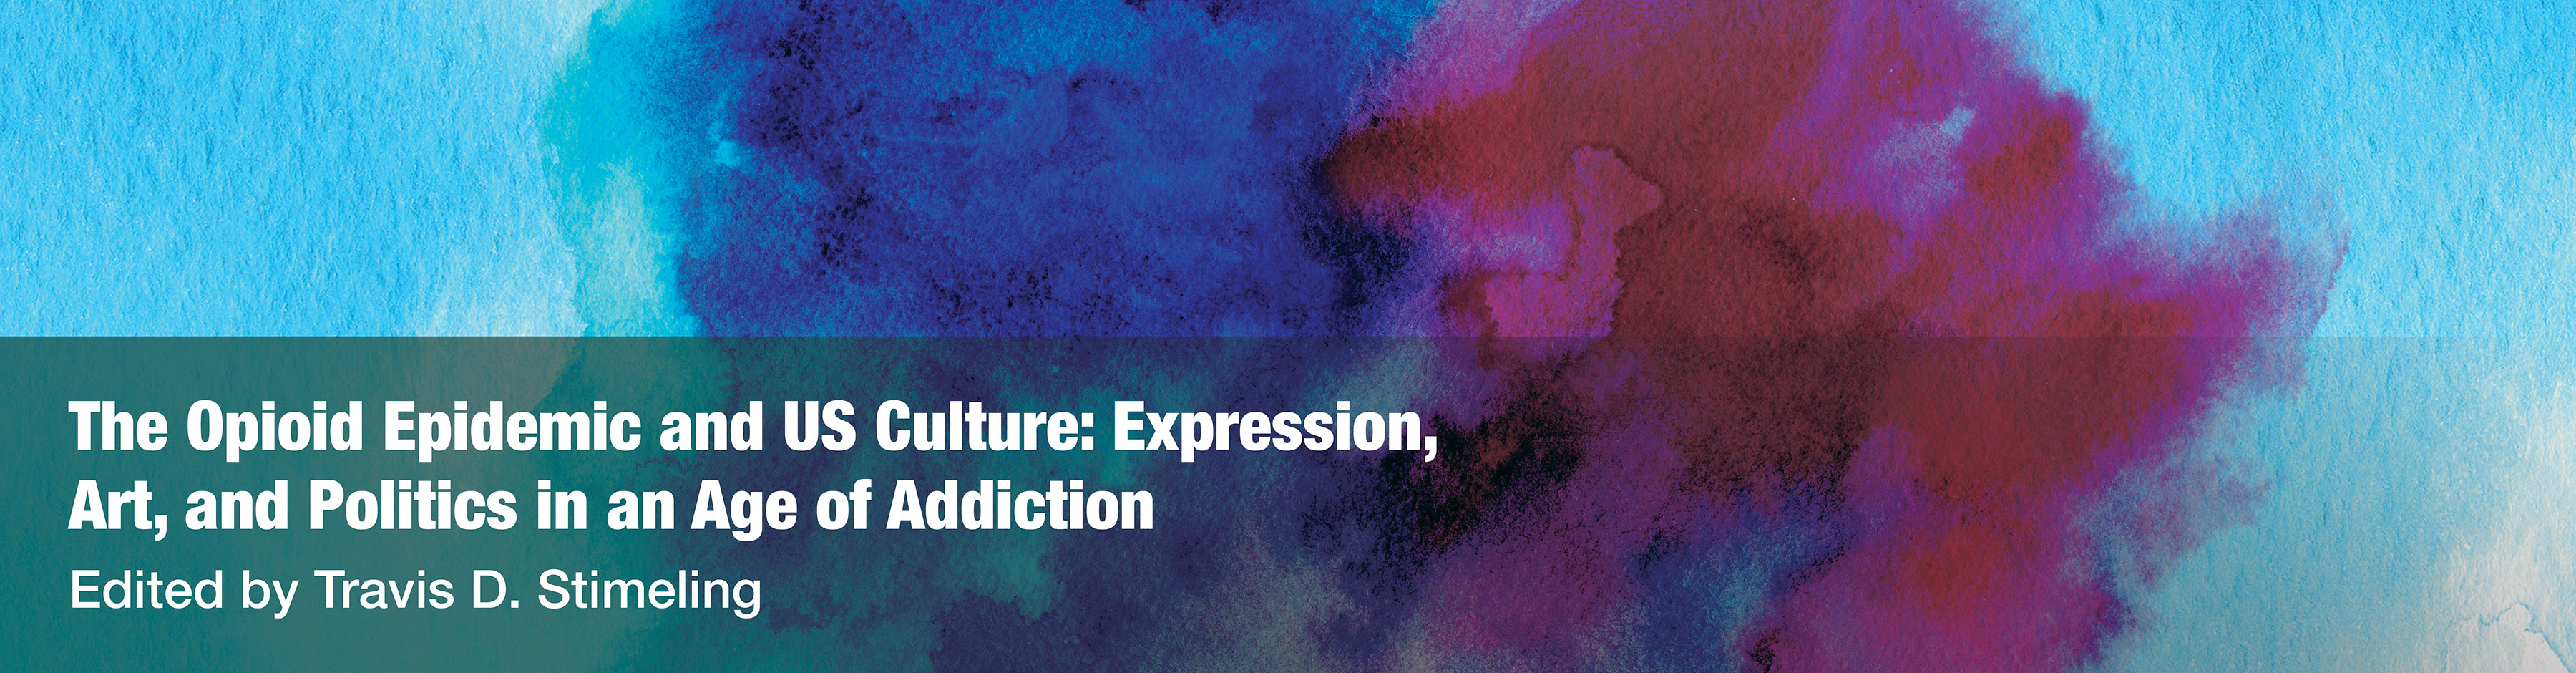 The Opioid Epidemic and US Culture: Expression, Art, and Politics in an Age of Addiction